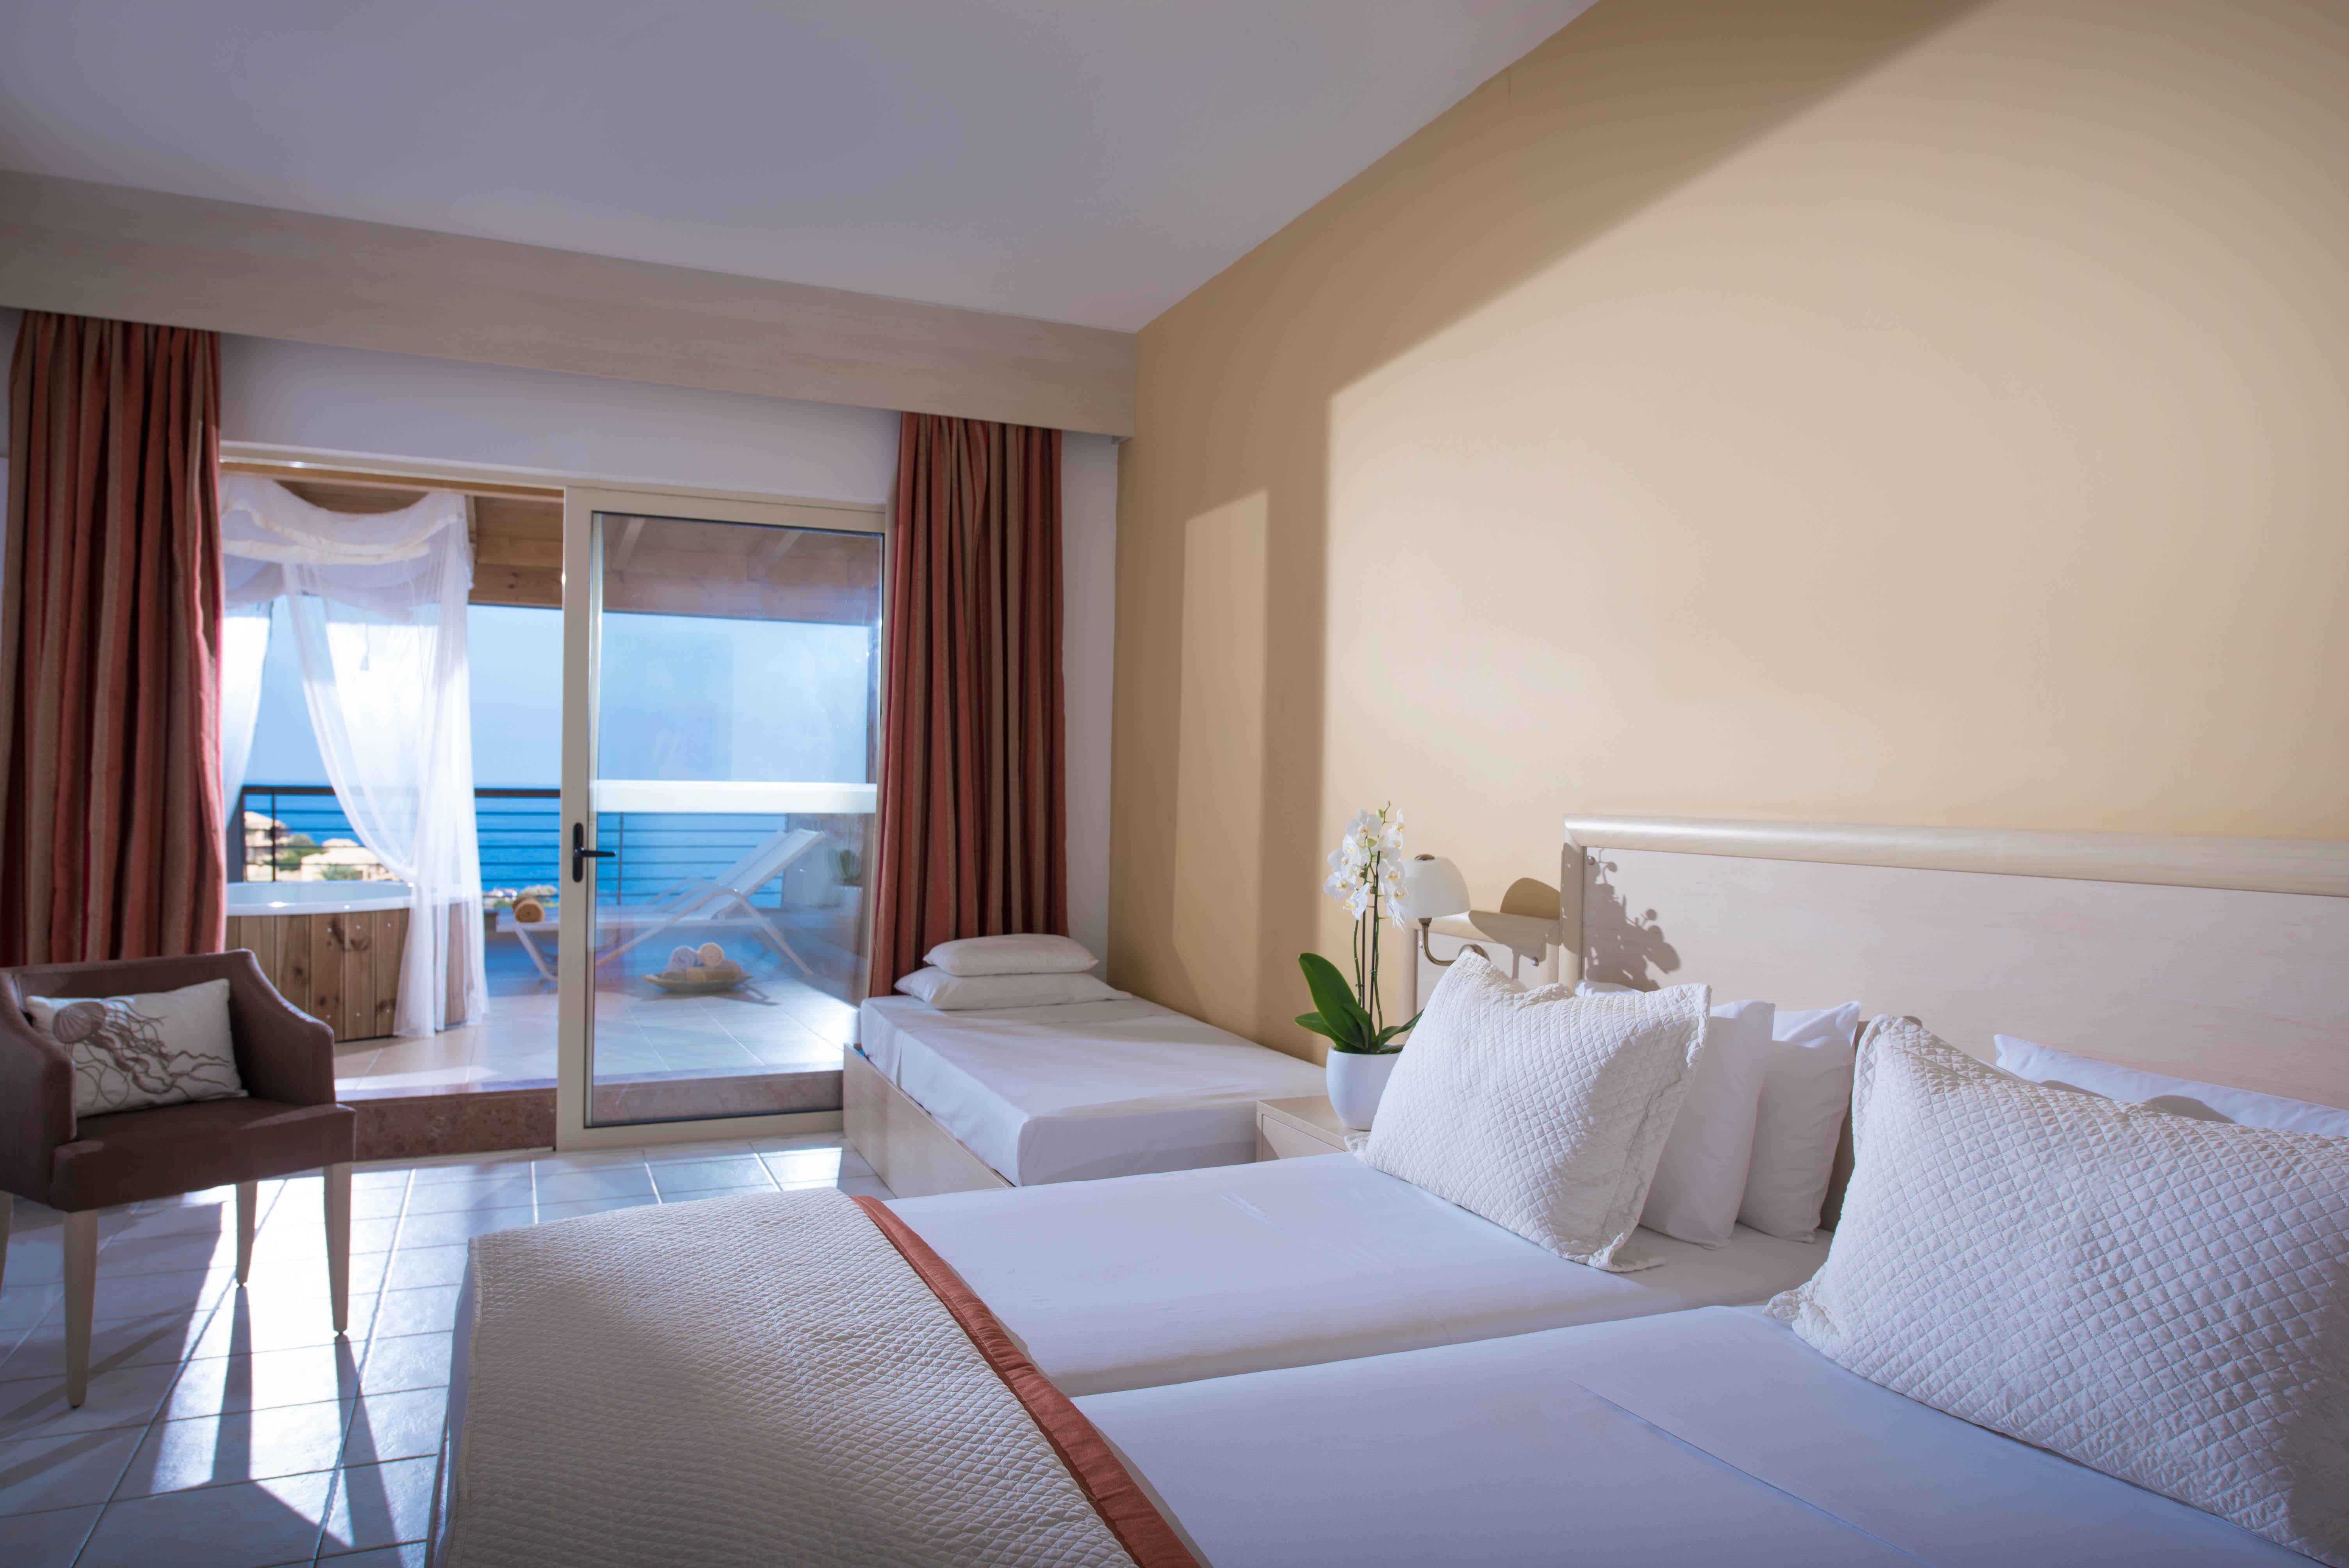 Executive Room Sea View with Outdoor Jacuzzi (main building)